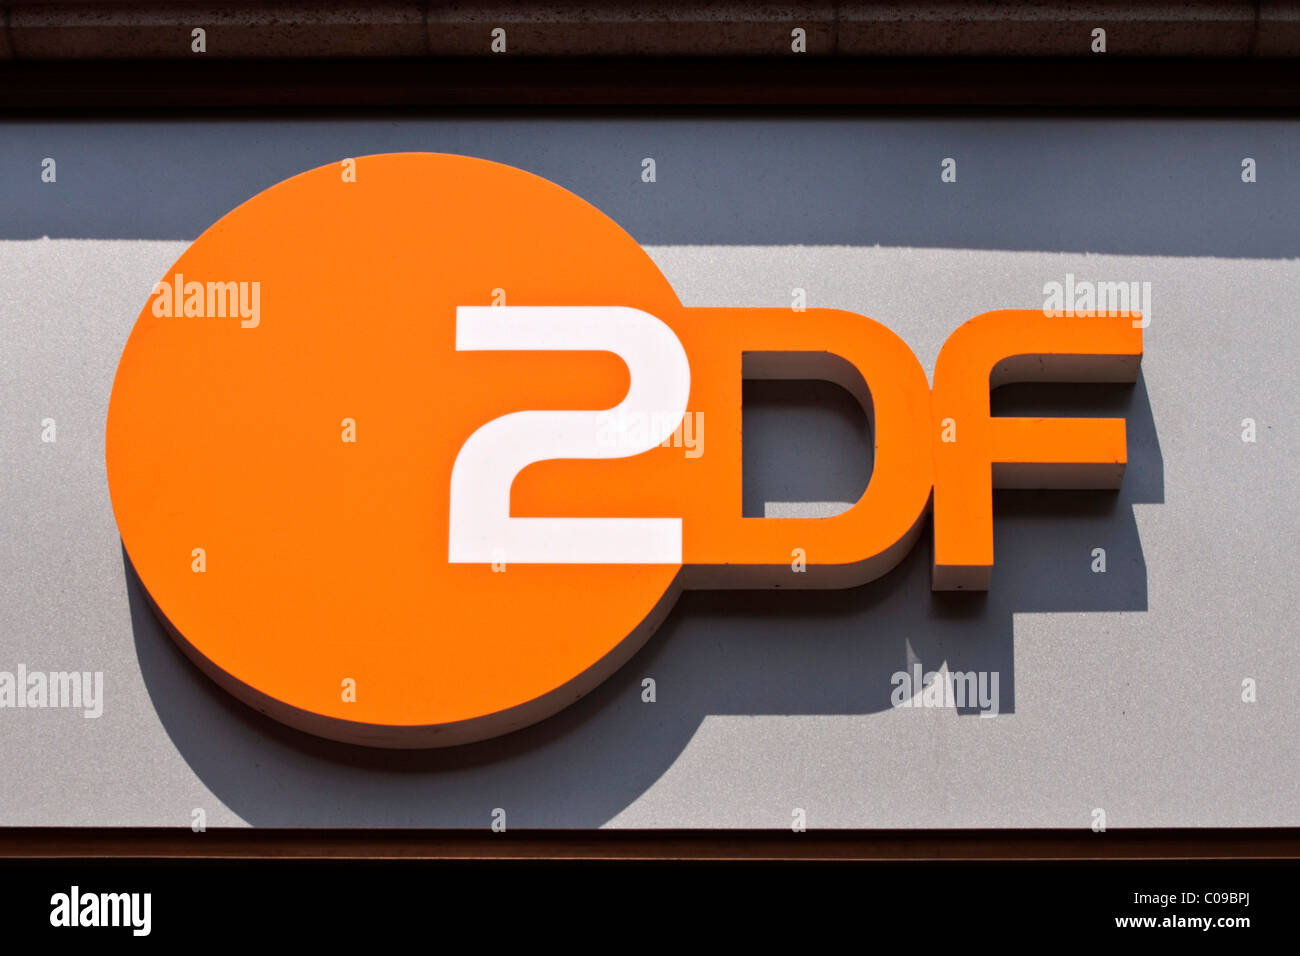 Sign of the public-service German television channel ZDF in Berlin, Germany - Stock Image